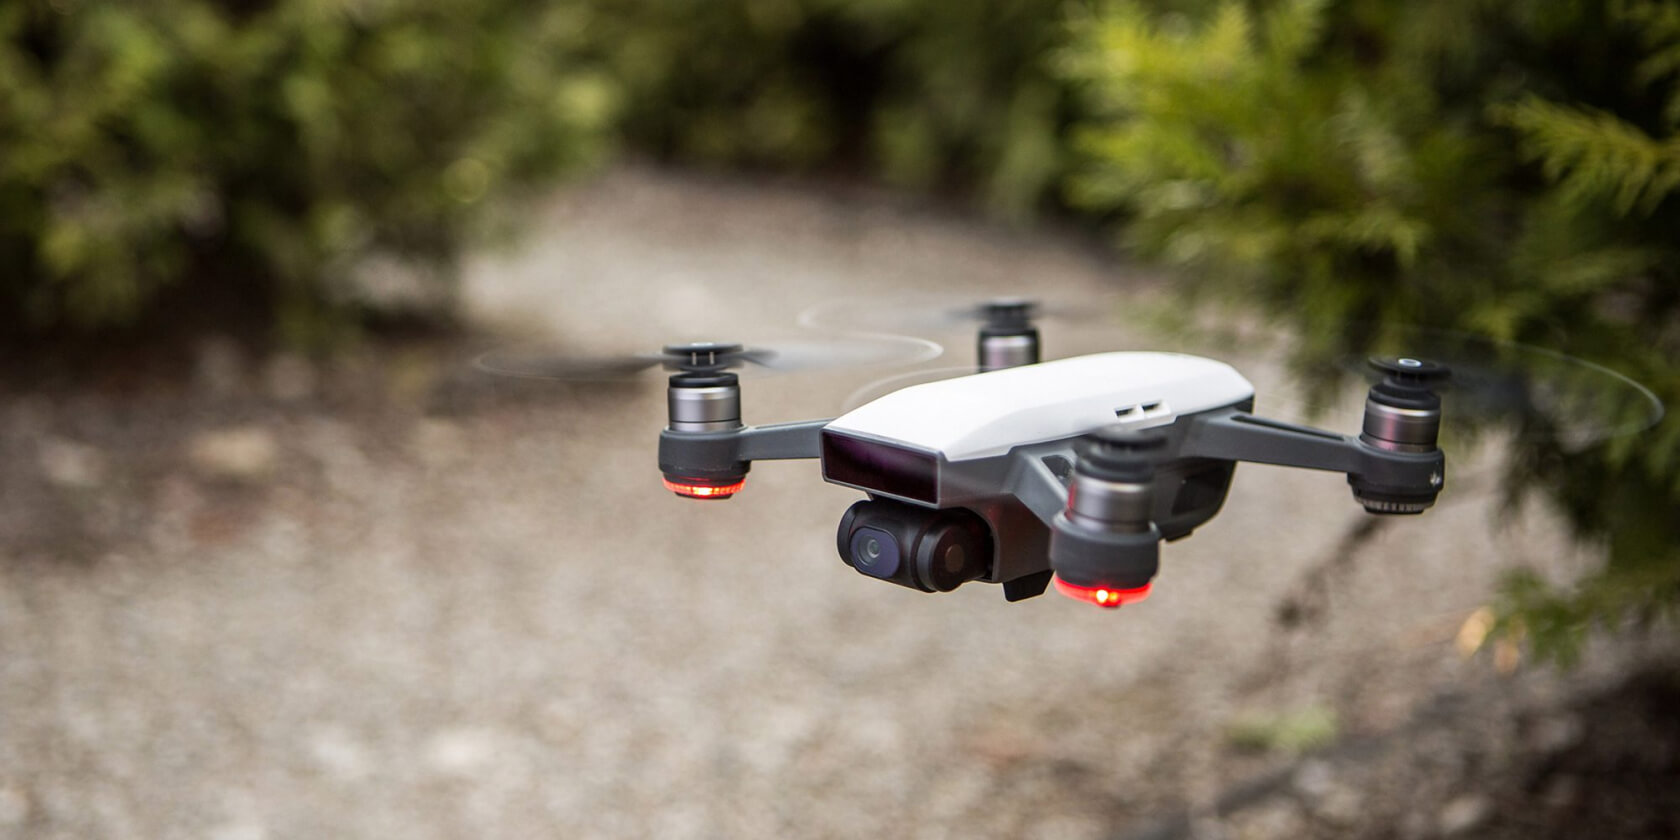 TechSpot + Wellbots giveaway: Win a DJI Spark drone and a BB-8 droid